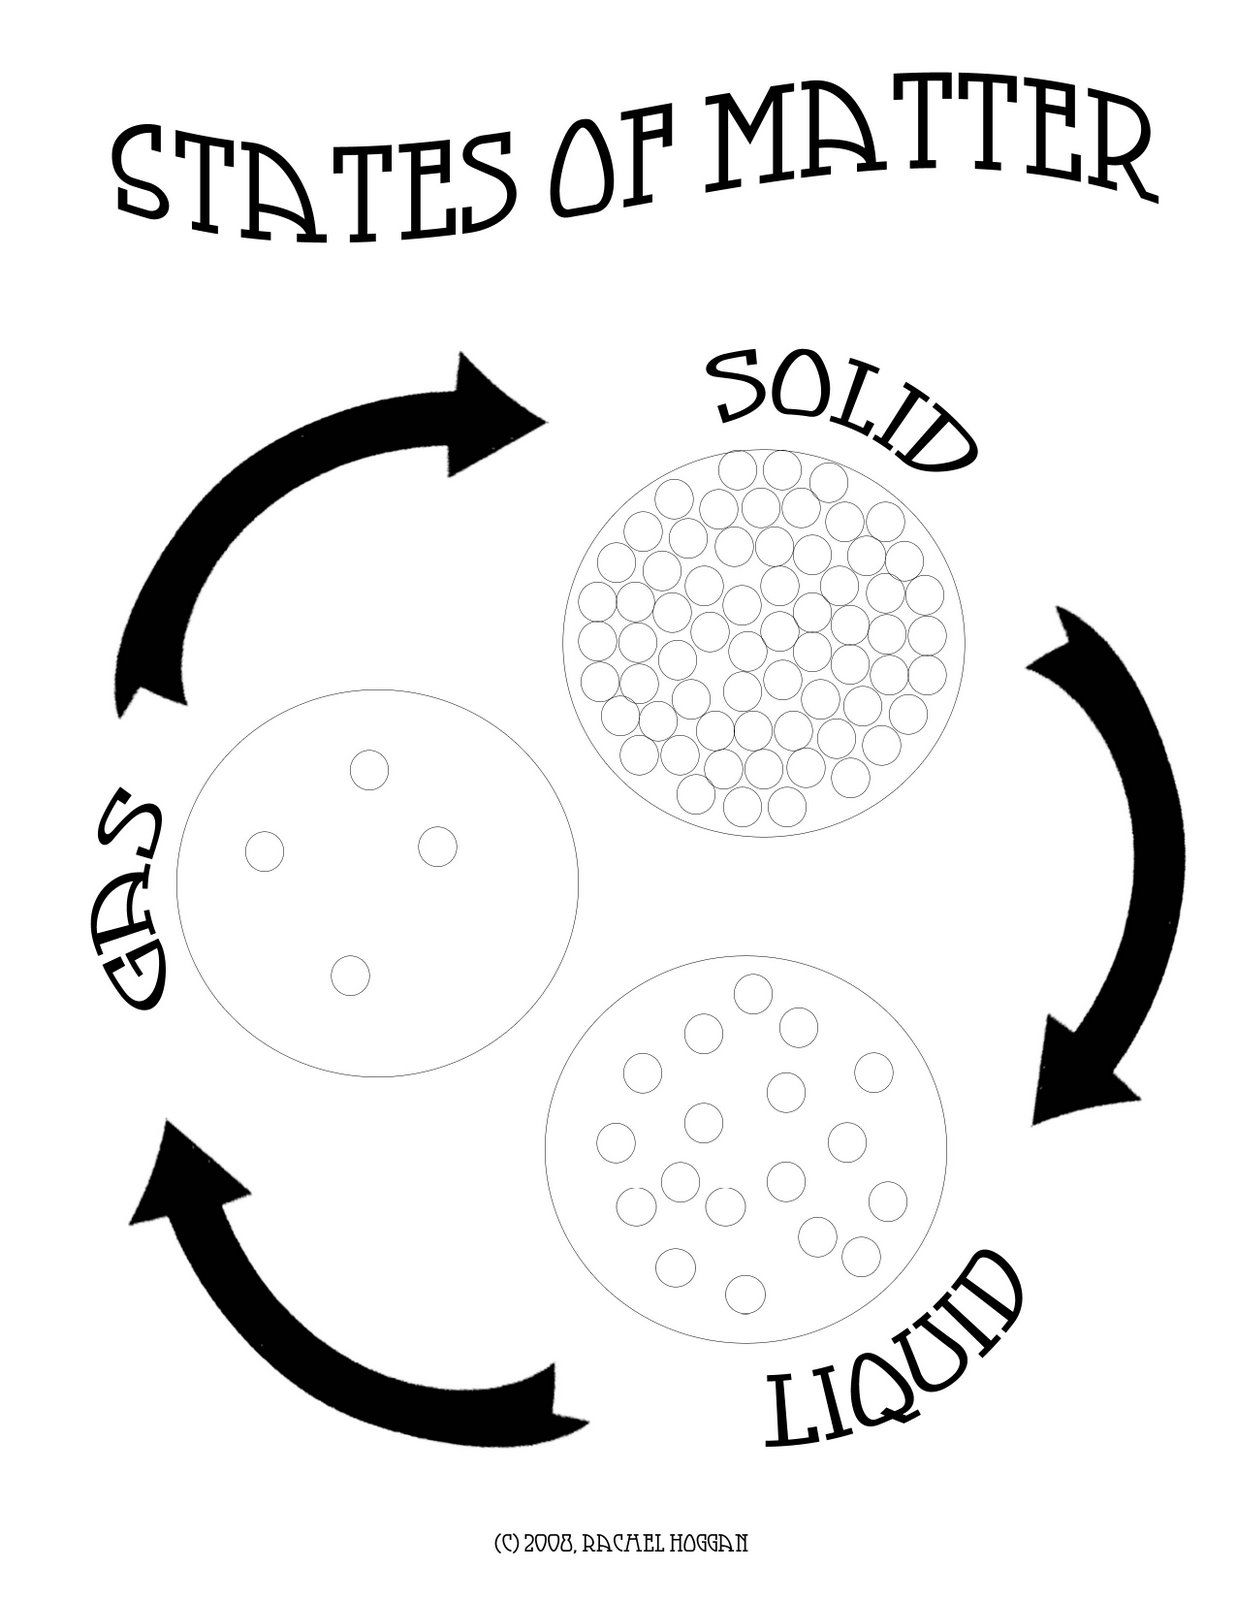 States Of Matter Solids Liquids And Gases Sketch Coloring Page